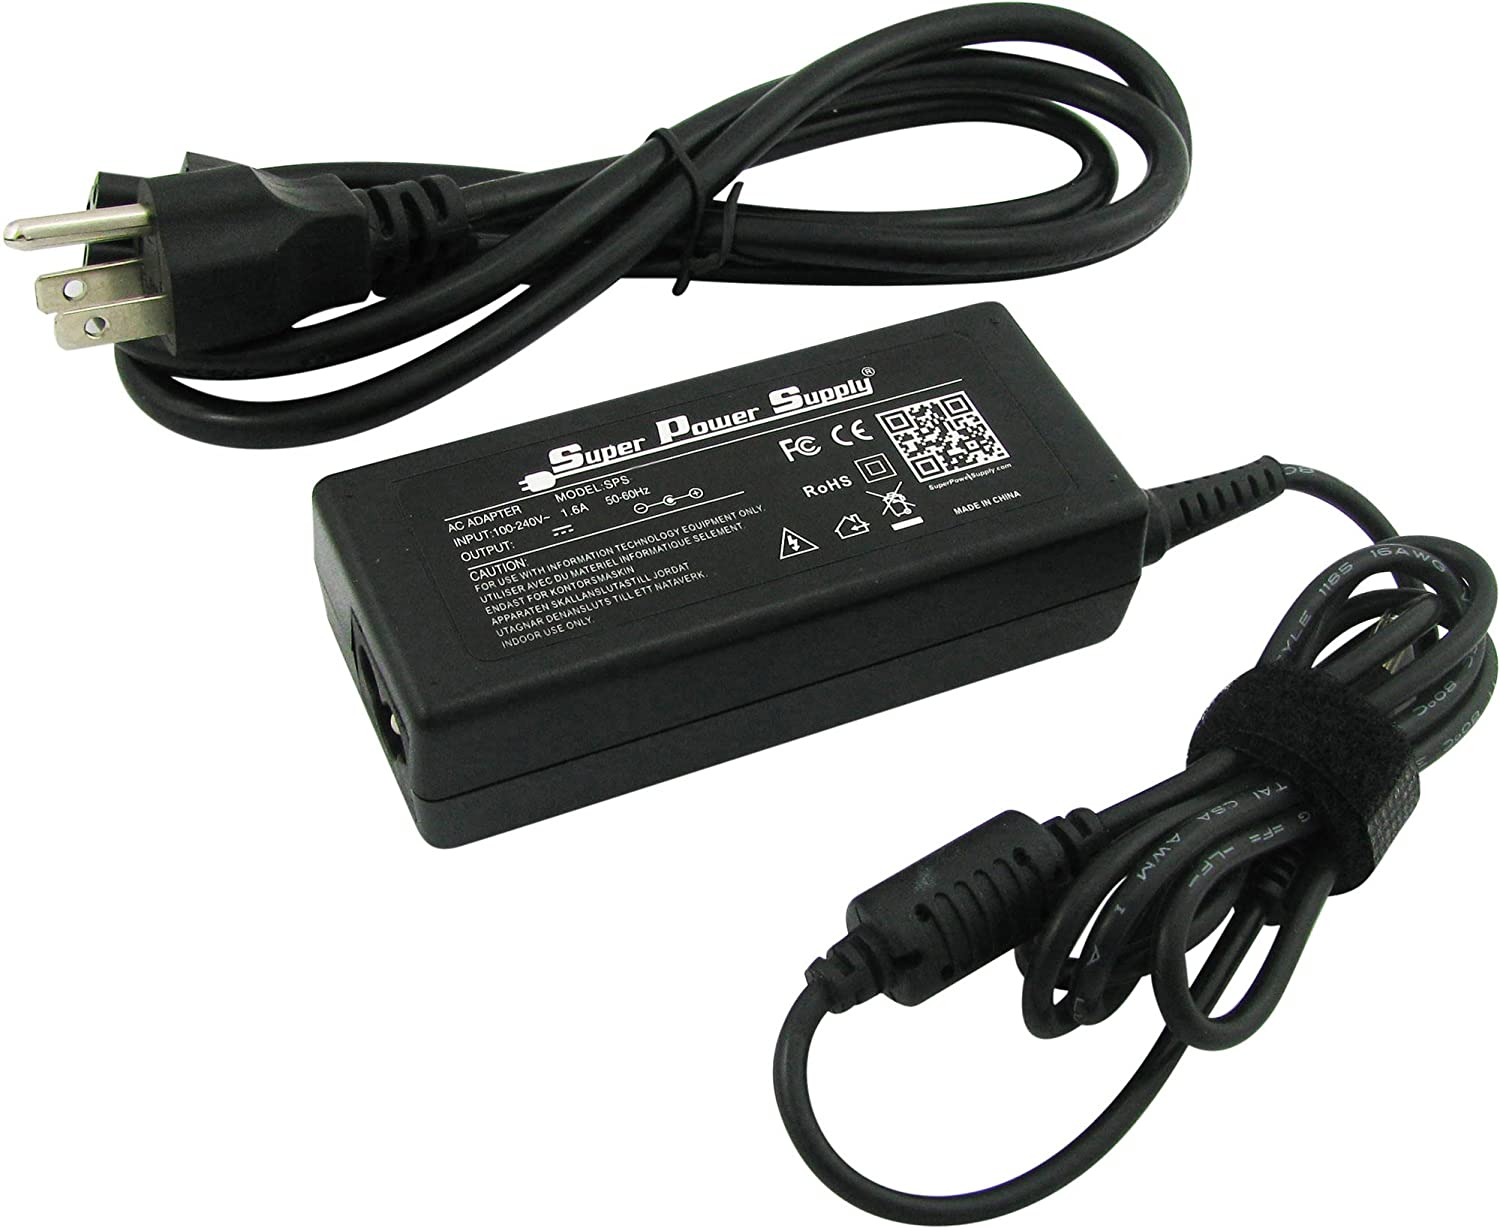 Super Power Supply AC/DC Laptop Charger Adapter Cord for Advent Airis Pragma N845, Pragma N750